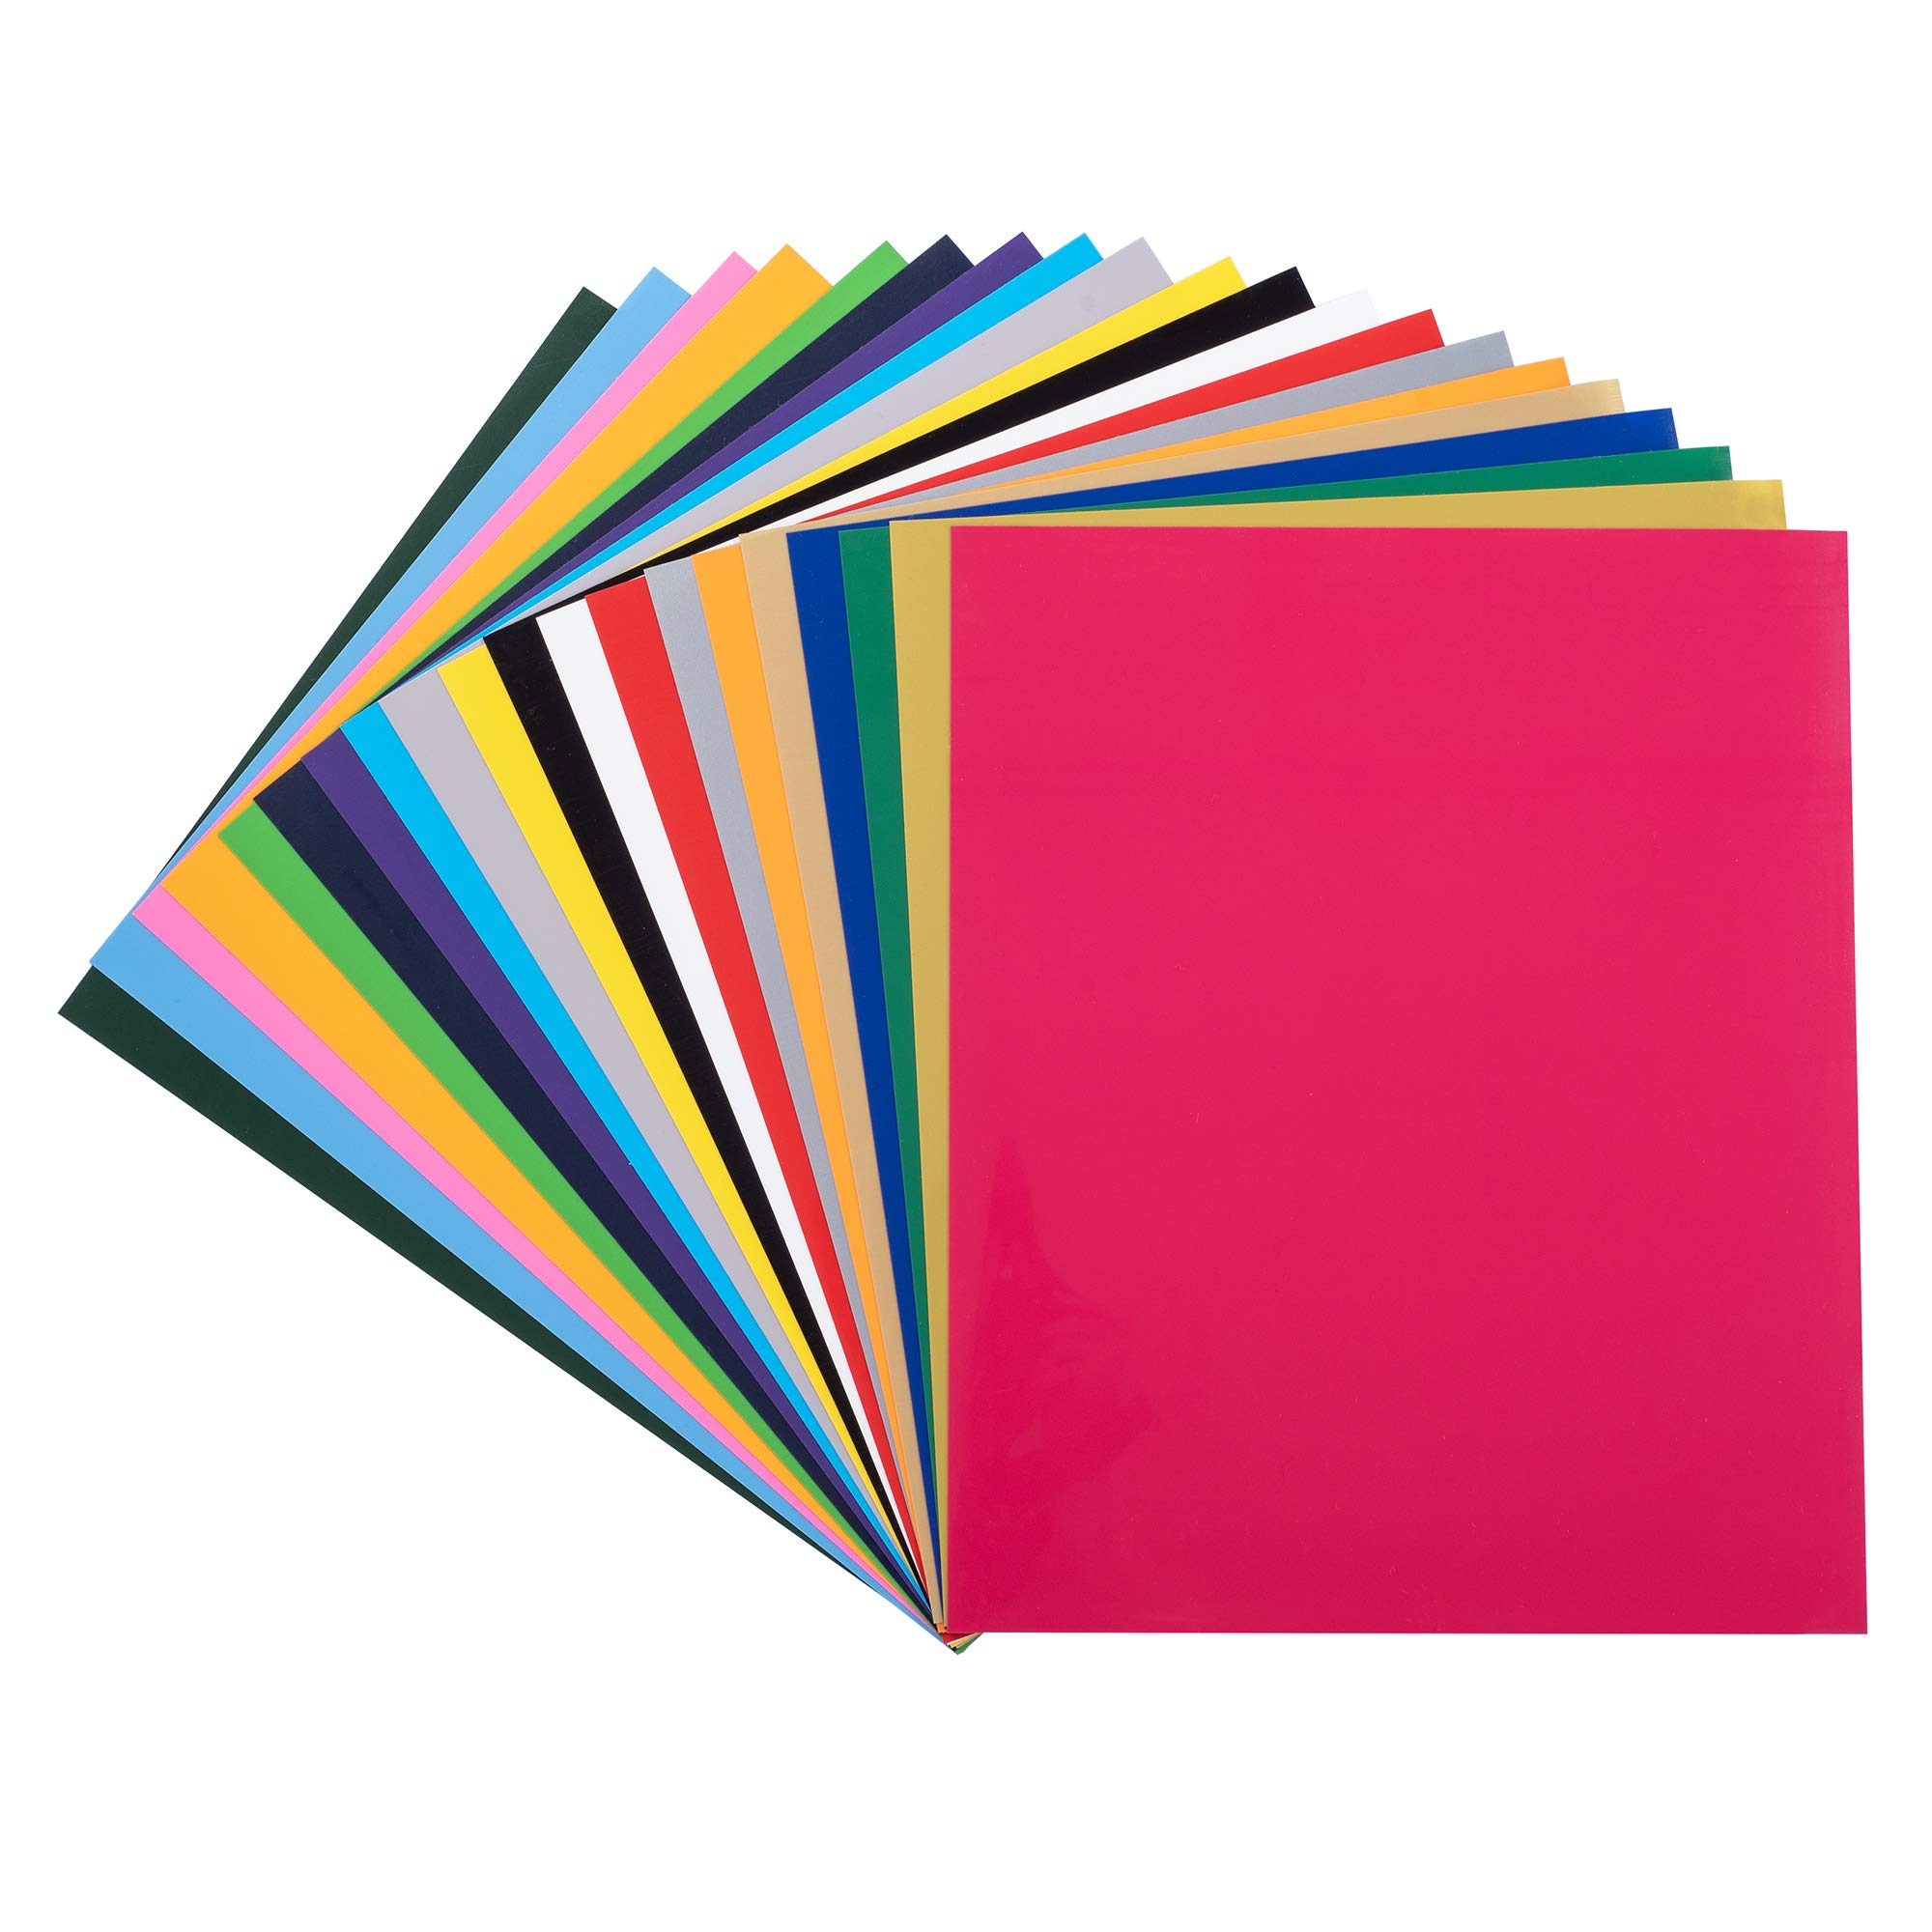 PU HTV Vinyl Bundle 20 Pack 20 Assorted Colors 12″x 10″ Sheets